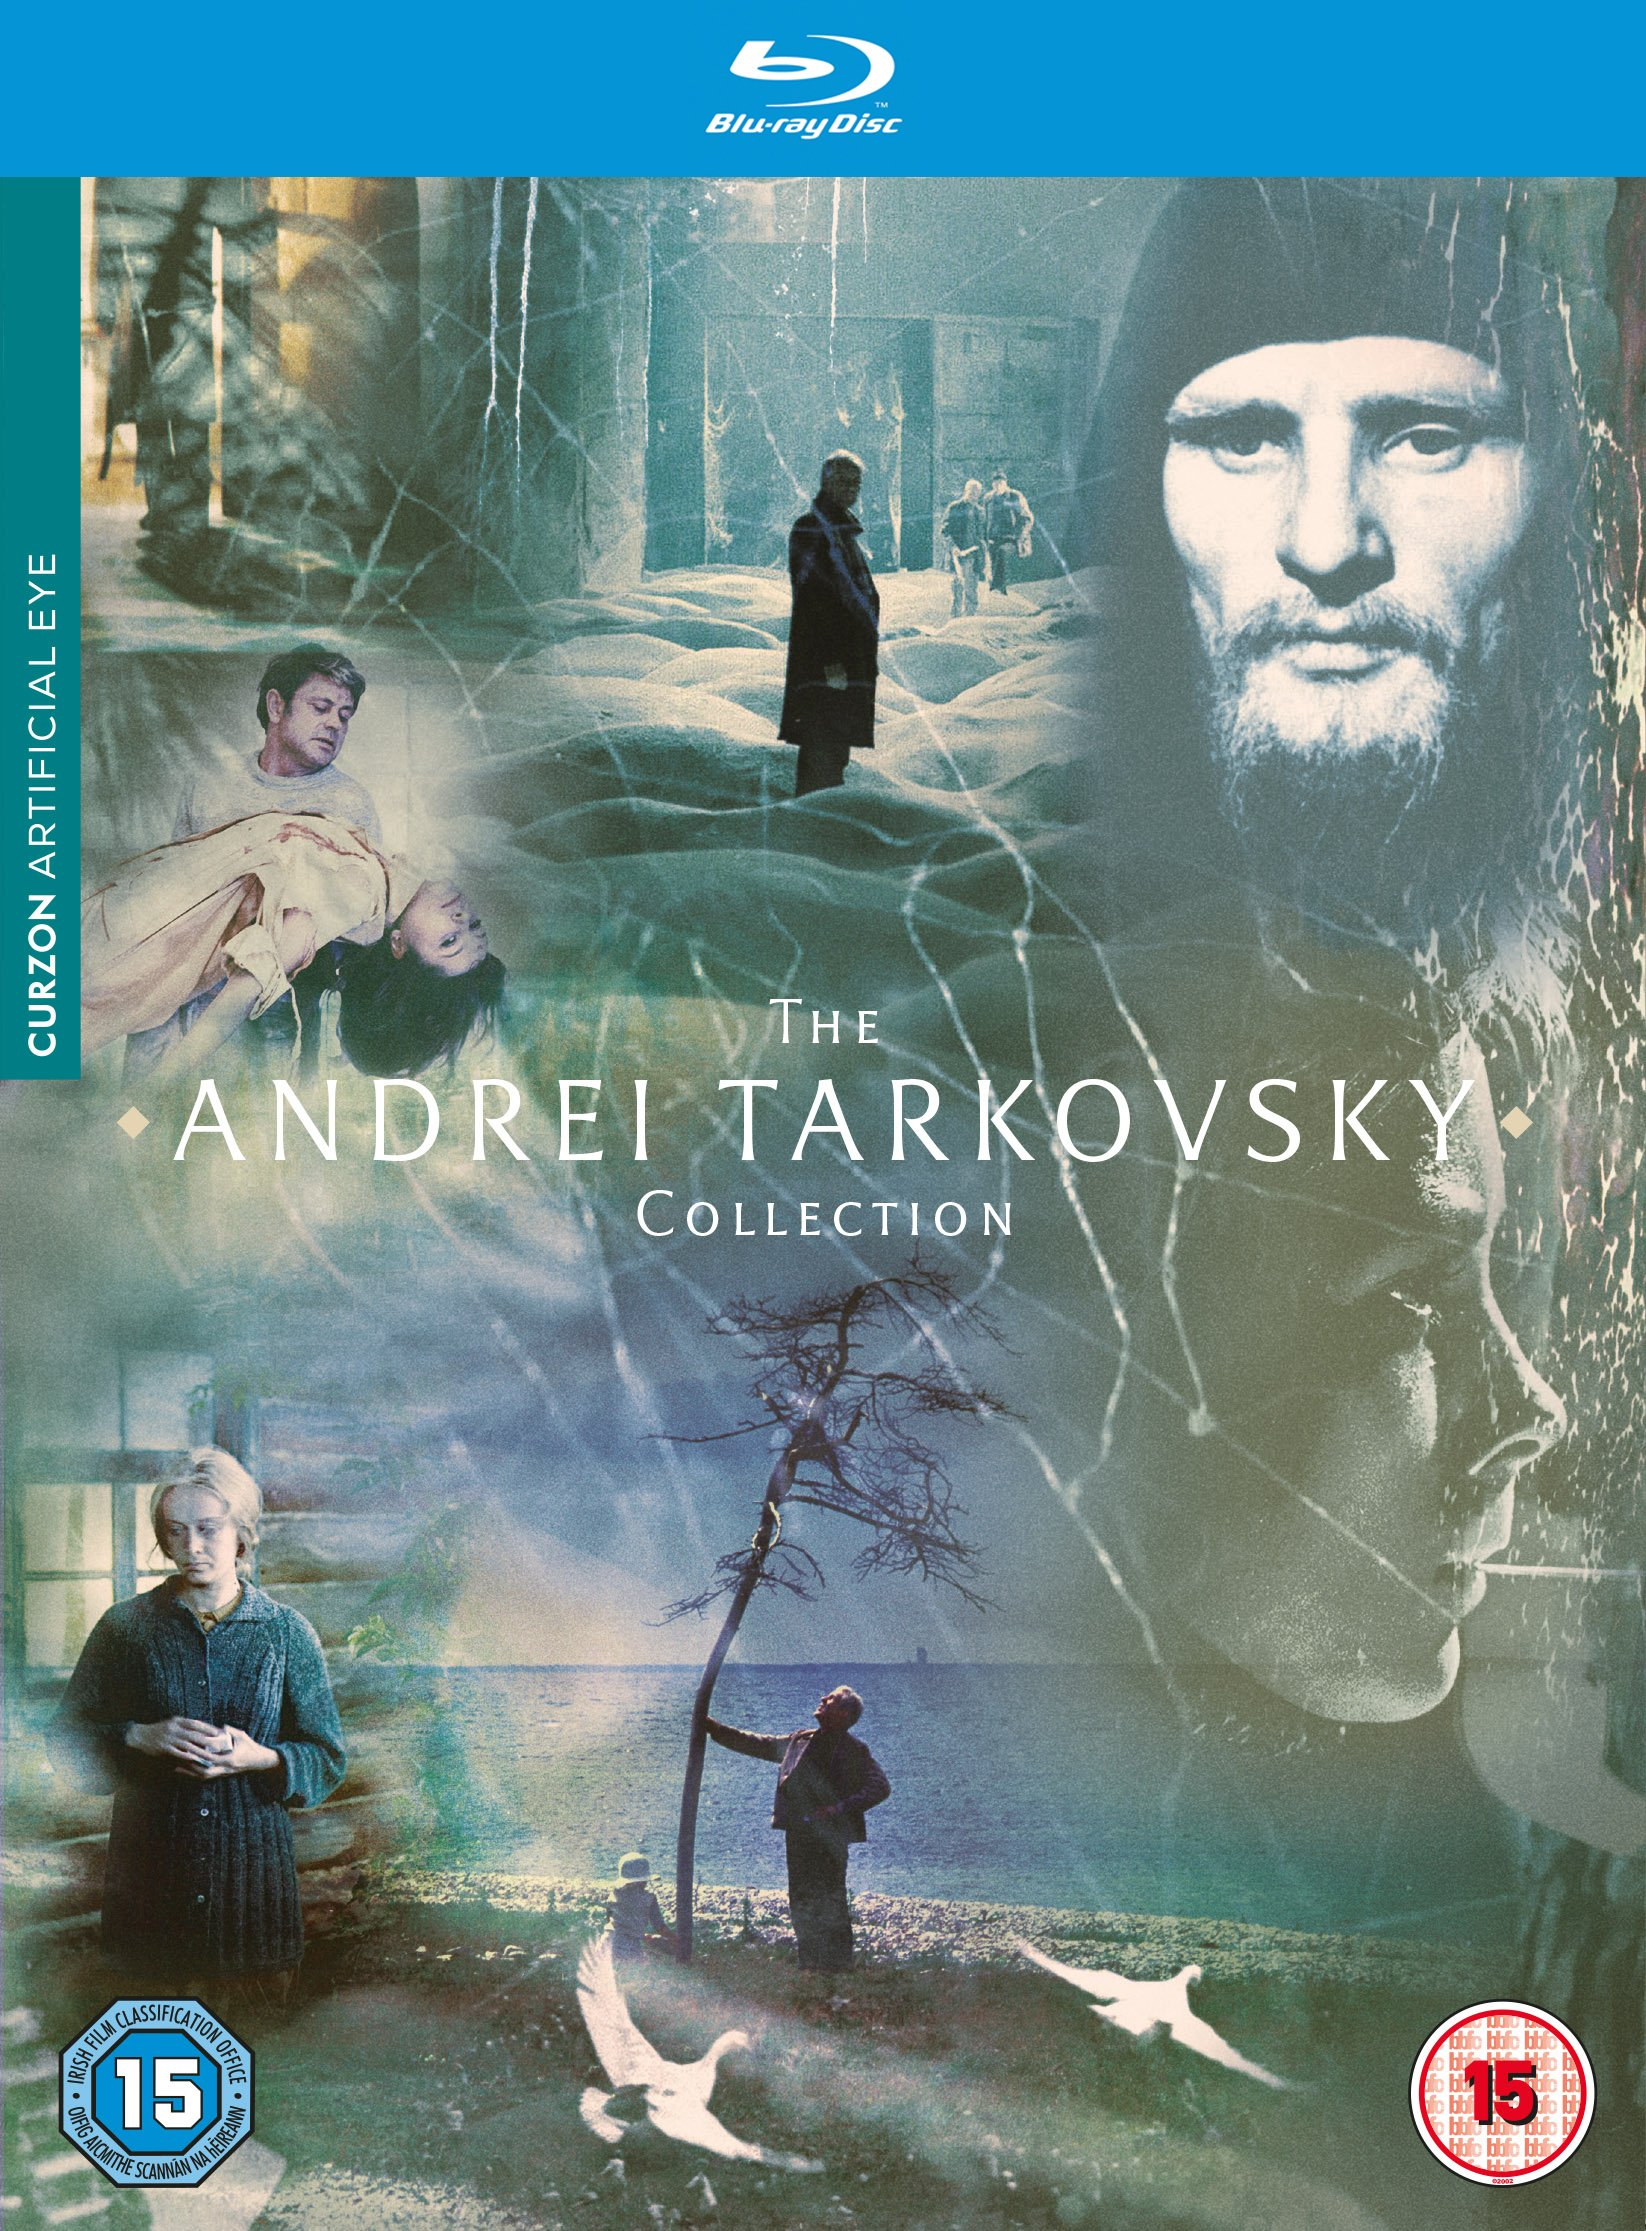 Sculpting Time - The Andrei Tarkovsky Collection [Blu-ray]